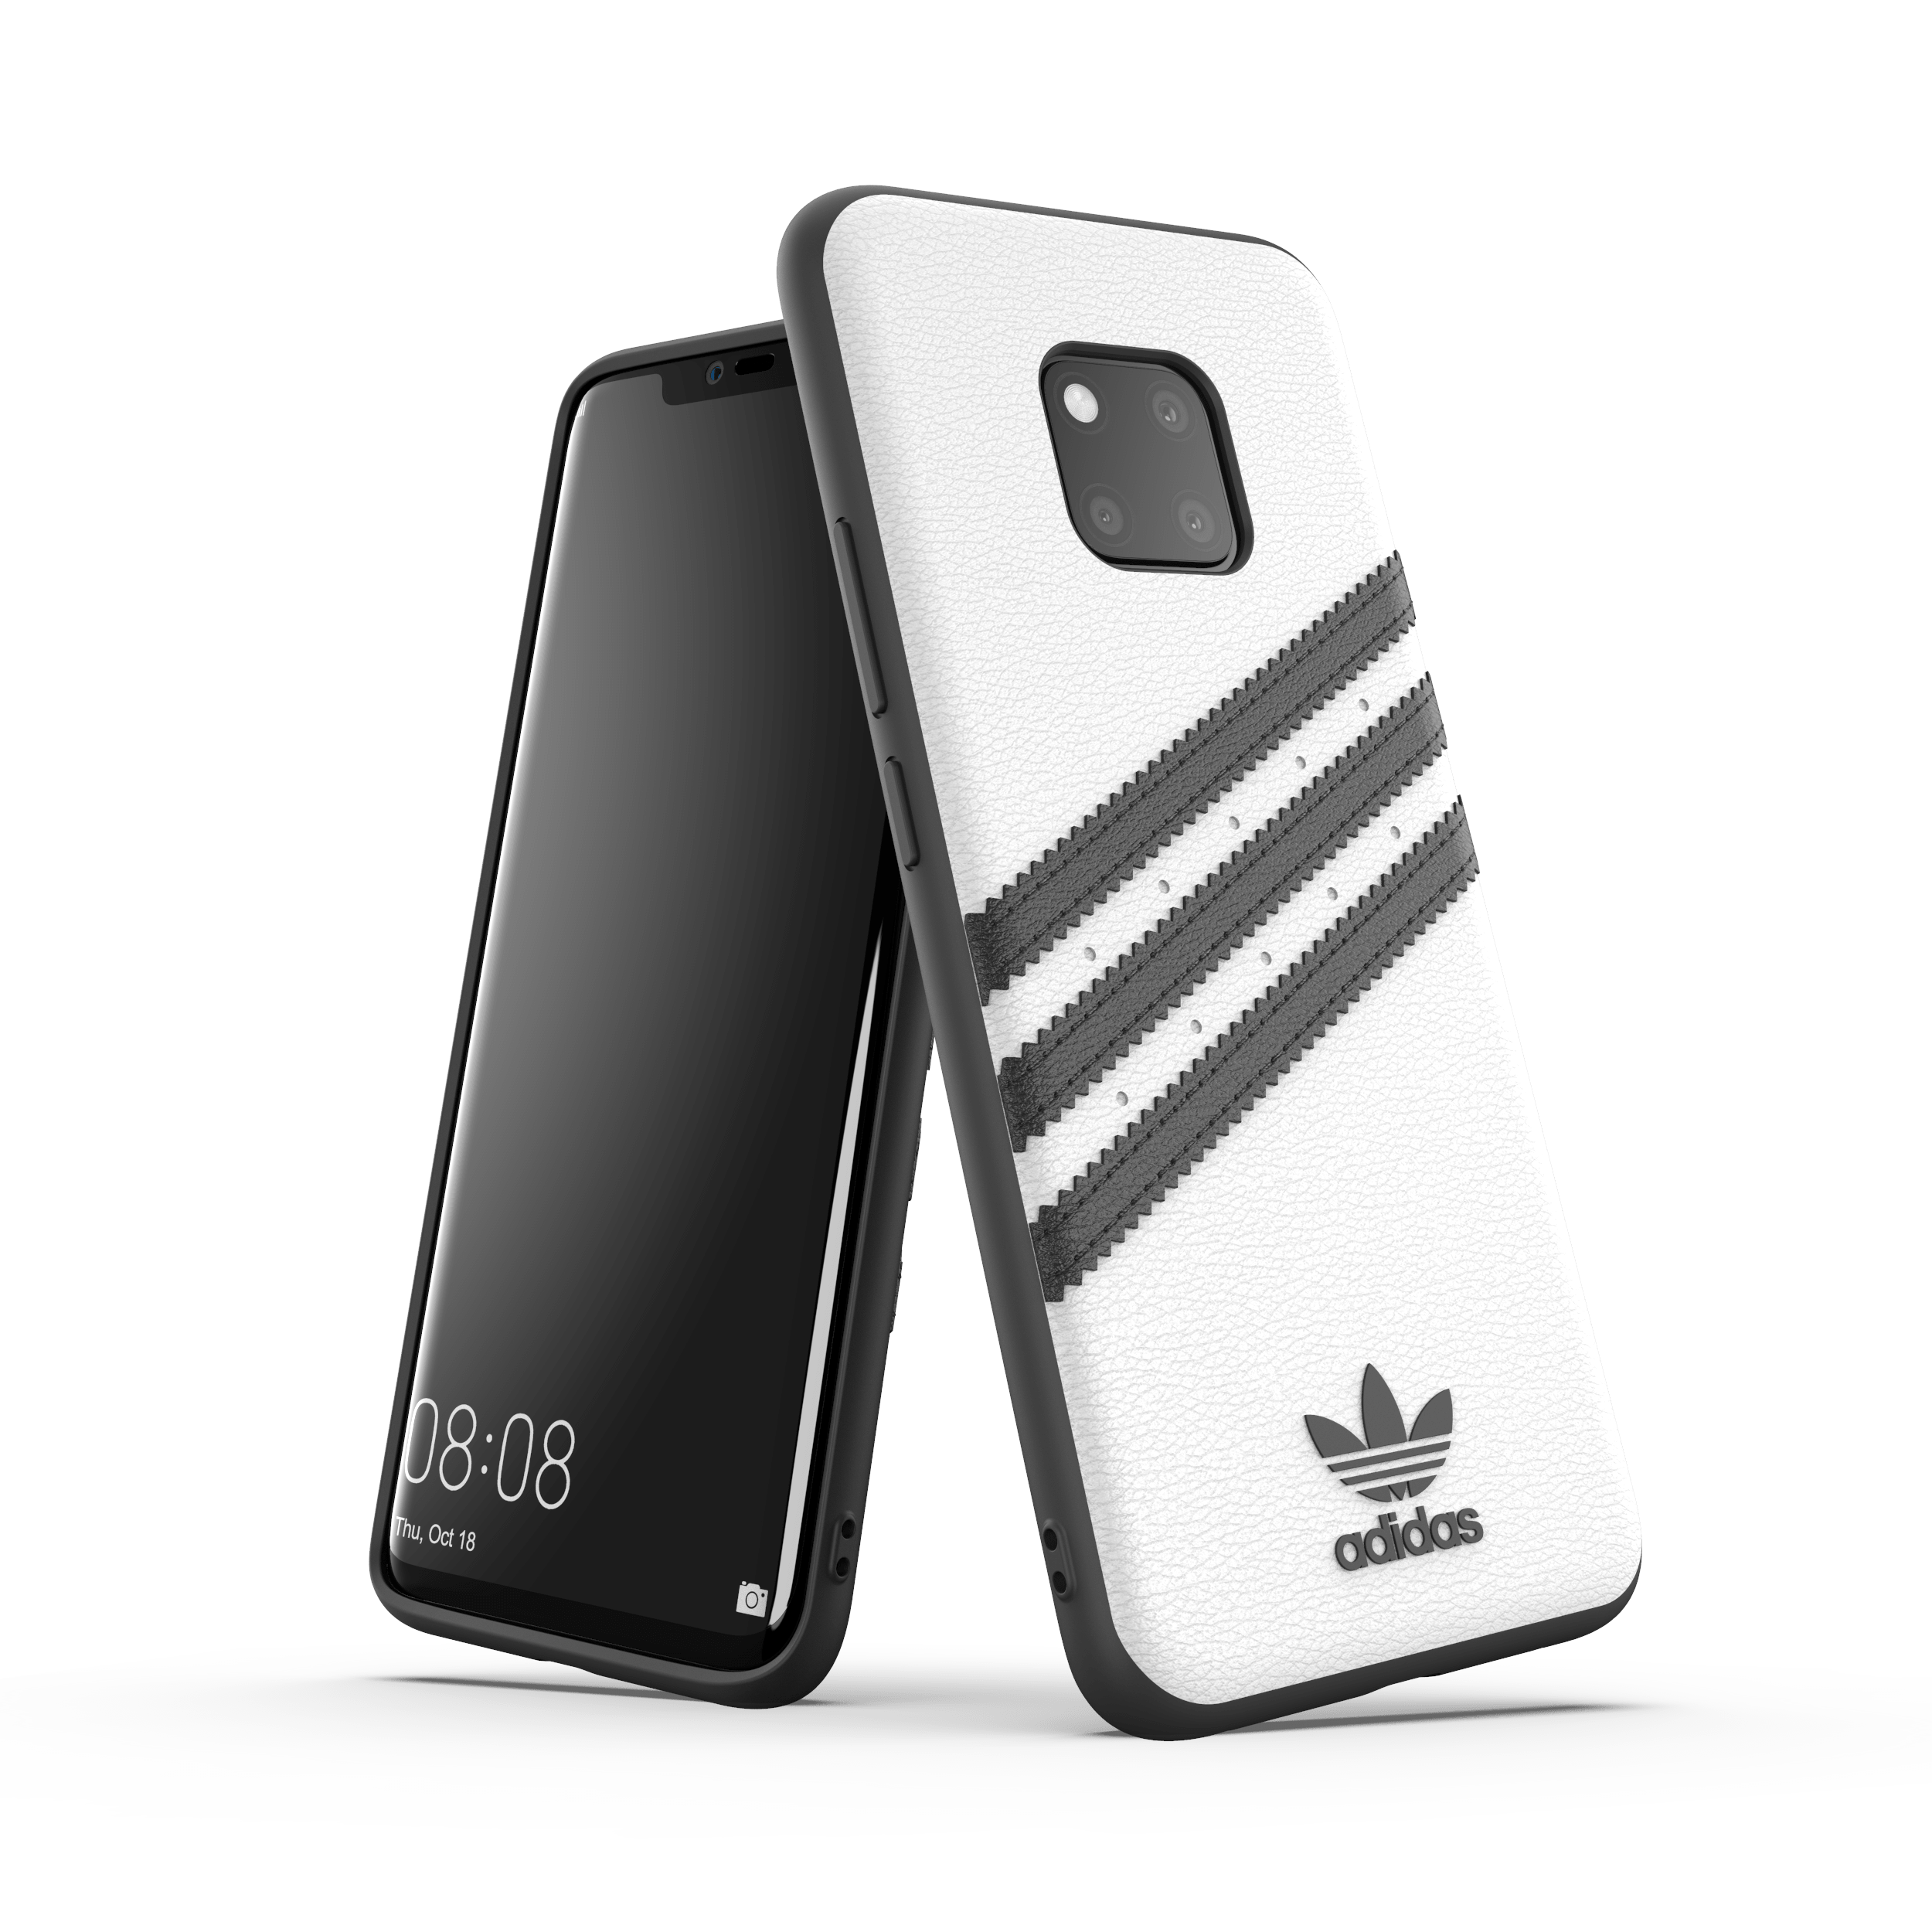 Caballero amable Energizar Debilidad  adidas Originals SS19 cases: now available for Huawei - TLF